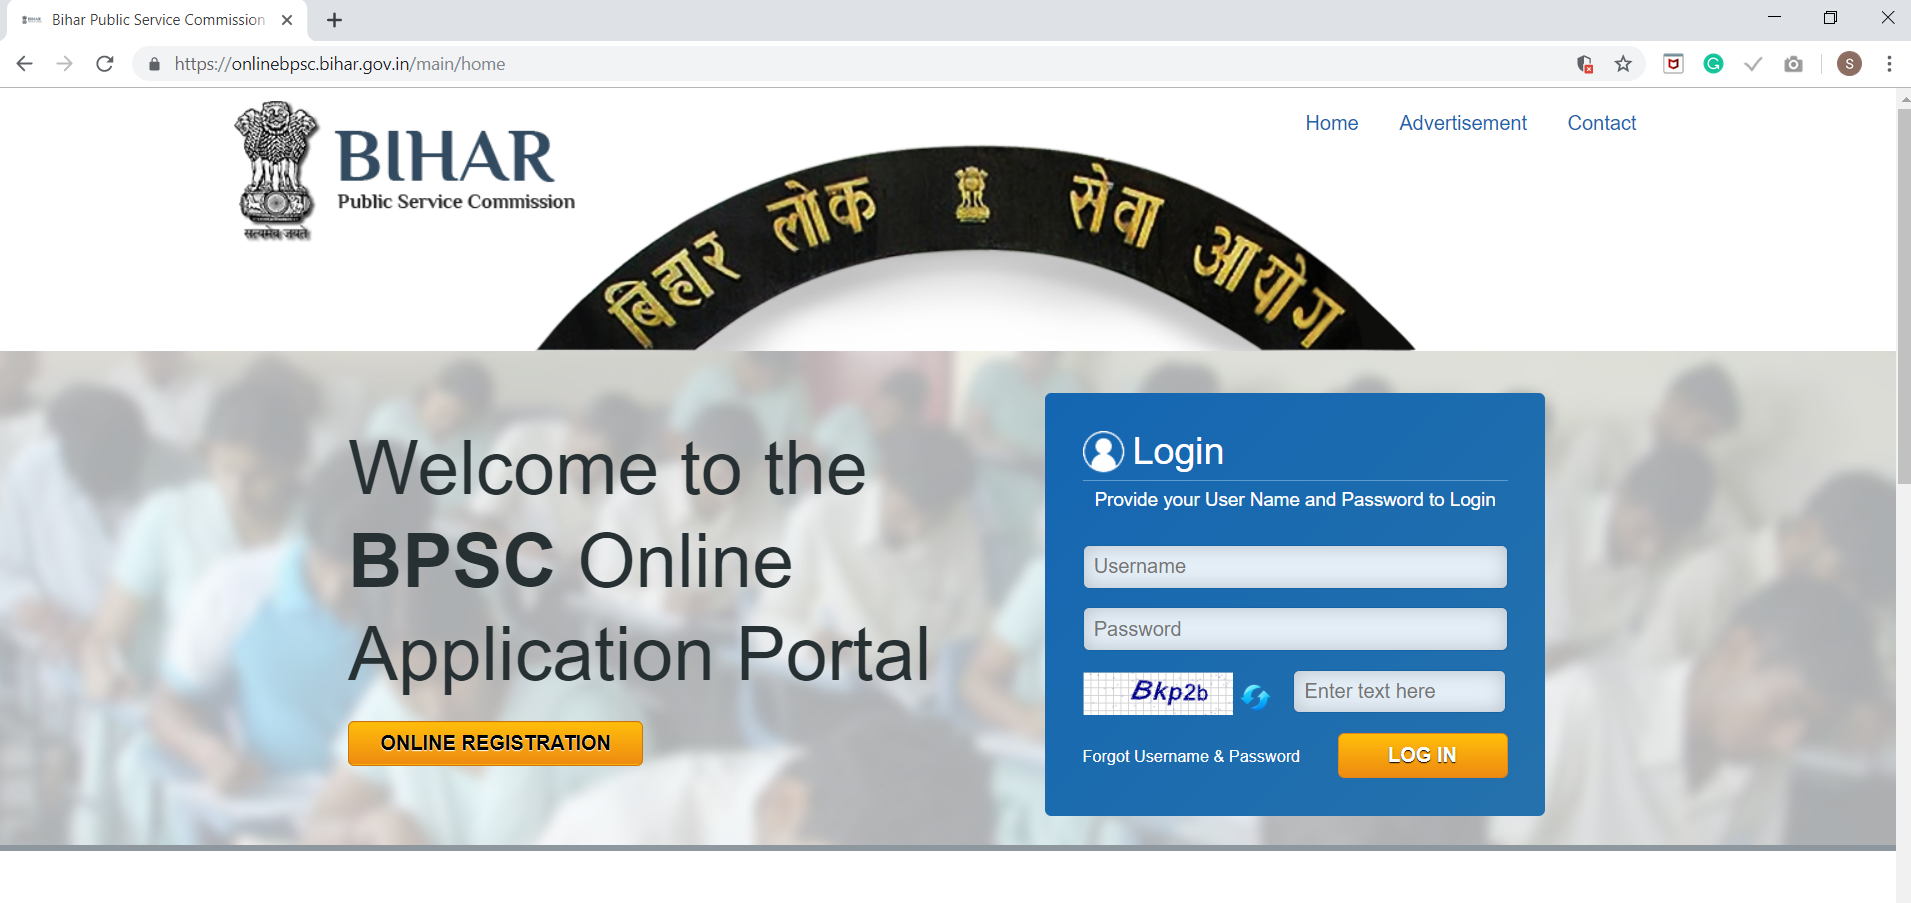 BPSC Online Application Home Page